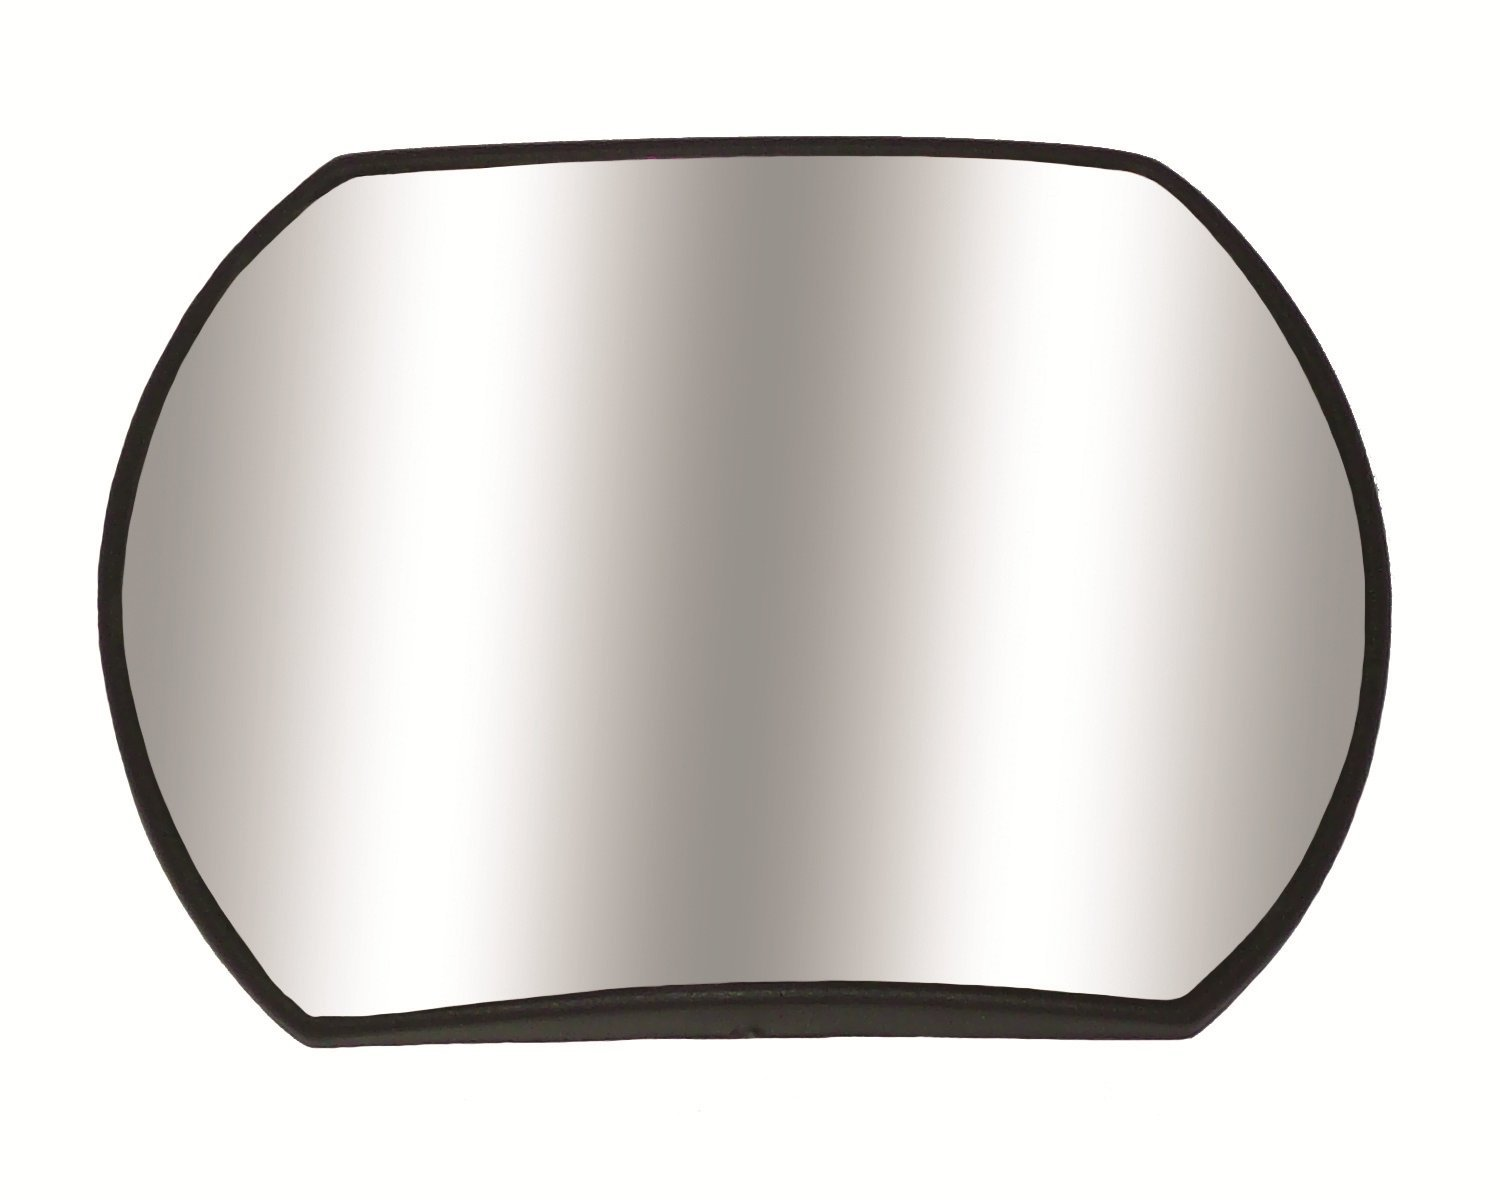 CIPA 49402 4' x 5.5' HotSpots Oblong Stick-On Convex Mirror 0202.1000